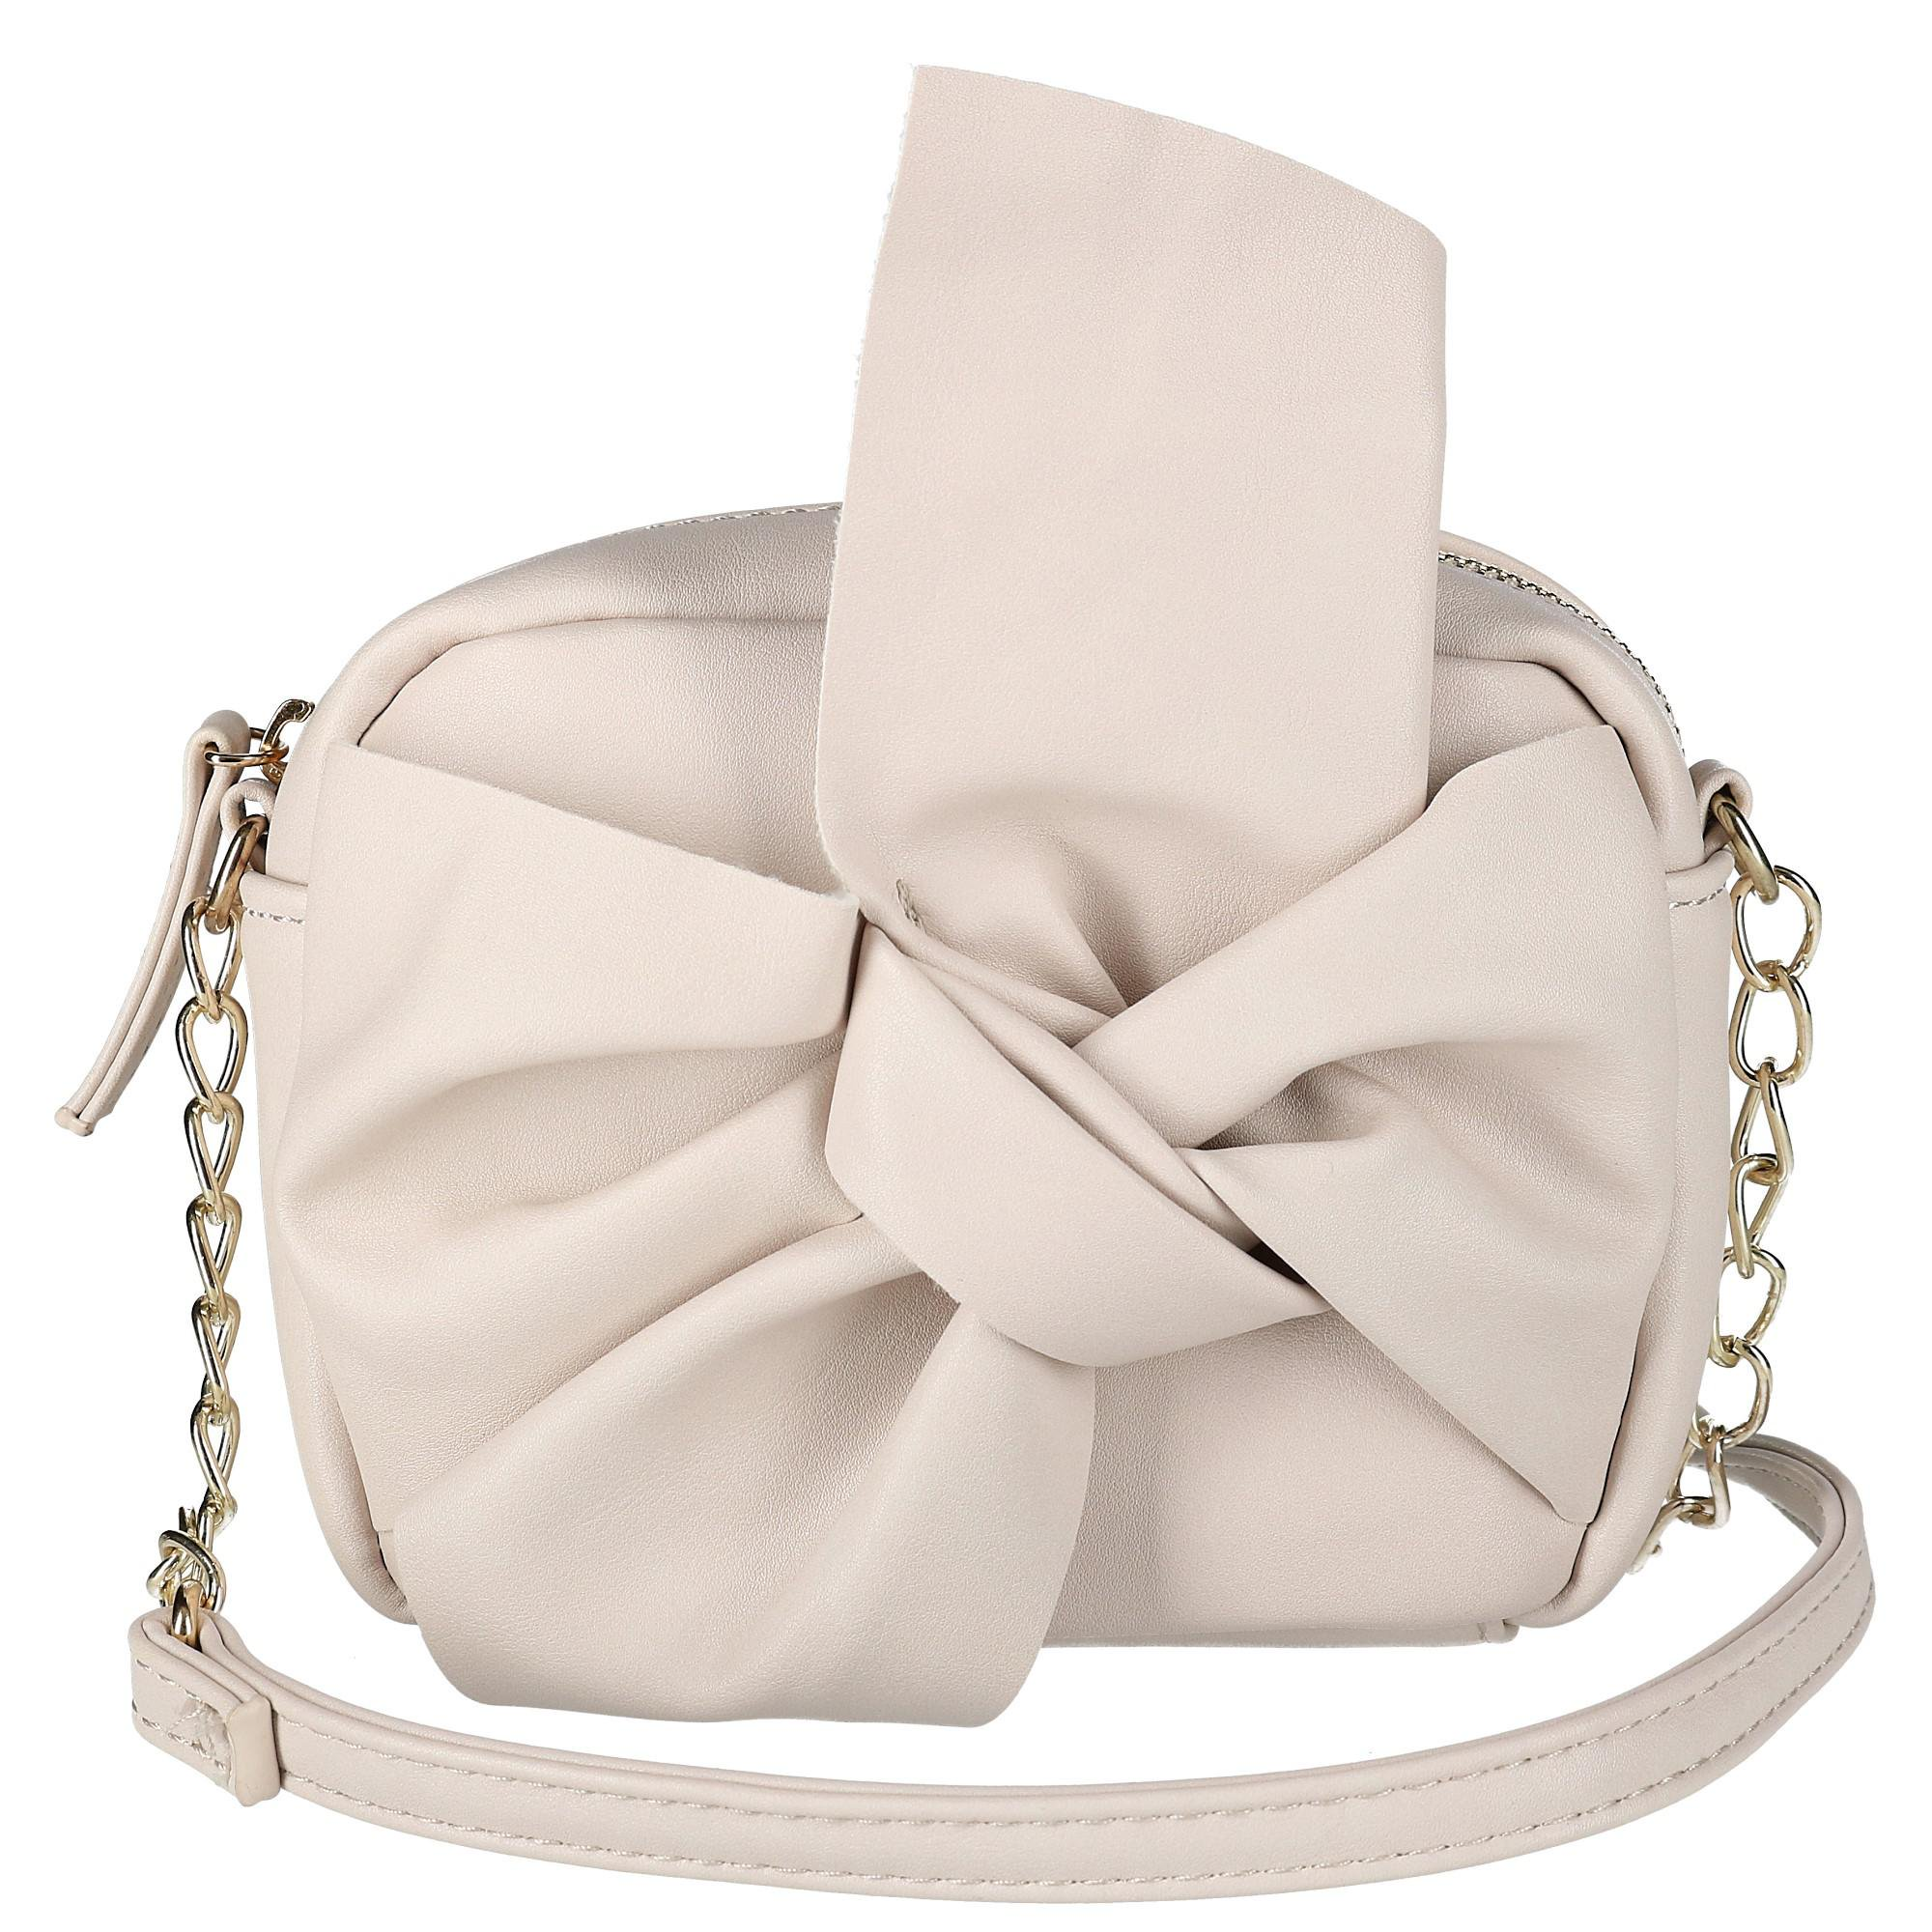 74ad88a9232 OMG Accessories Women's Embellished Crossbody Bag with Knot Bow ...